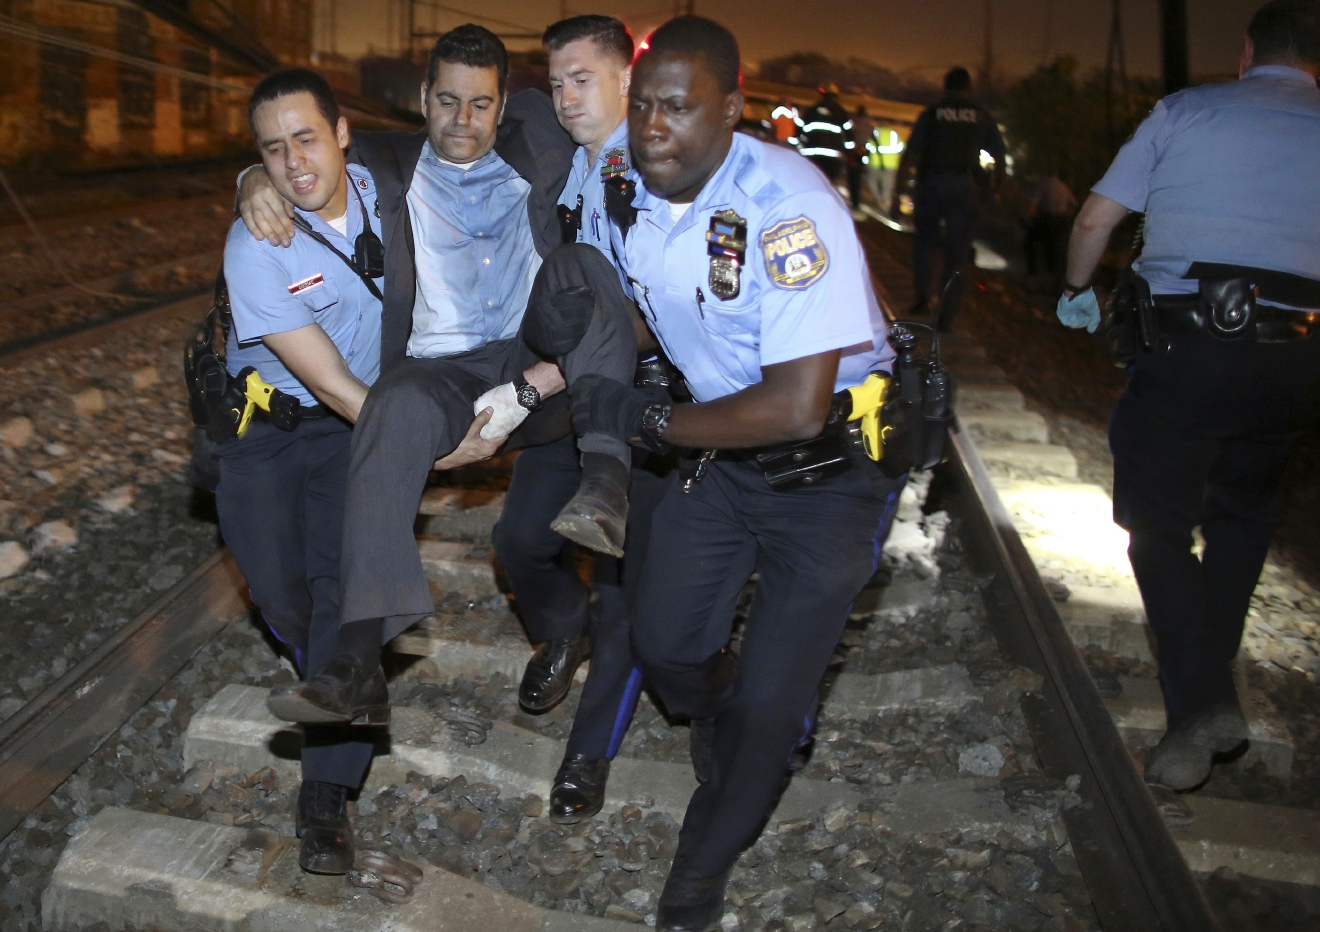 FILE - In this Tuesday, May 12, 2015 file photo, emergency personnel help a passenger in Philadelphia after the derailment in Philadelphia of an Amtrak train headed to New York. The National Transportation Safety Board is scheduled to meet Tuesday, May 17, 2016, to detail the probable cause of last year's fatal derailment. (AP Photo/Joseph Kaczmarek, File)